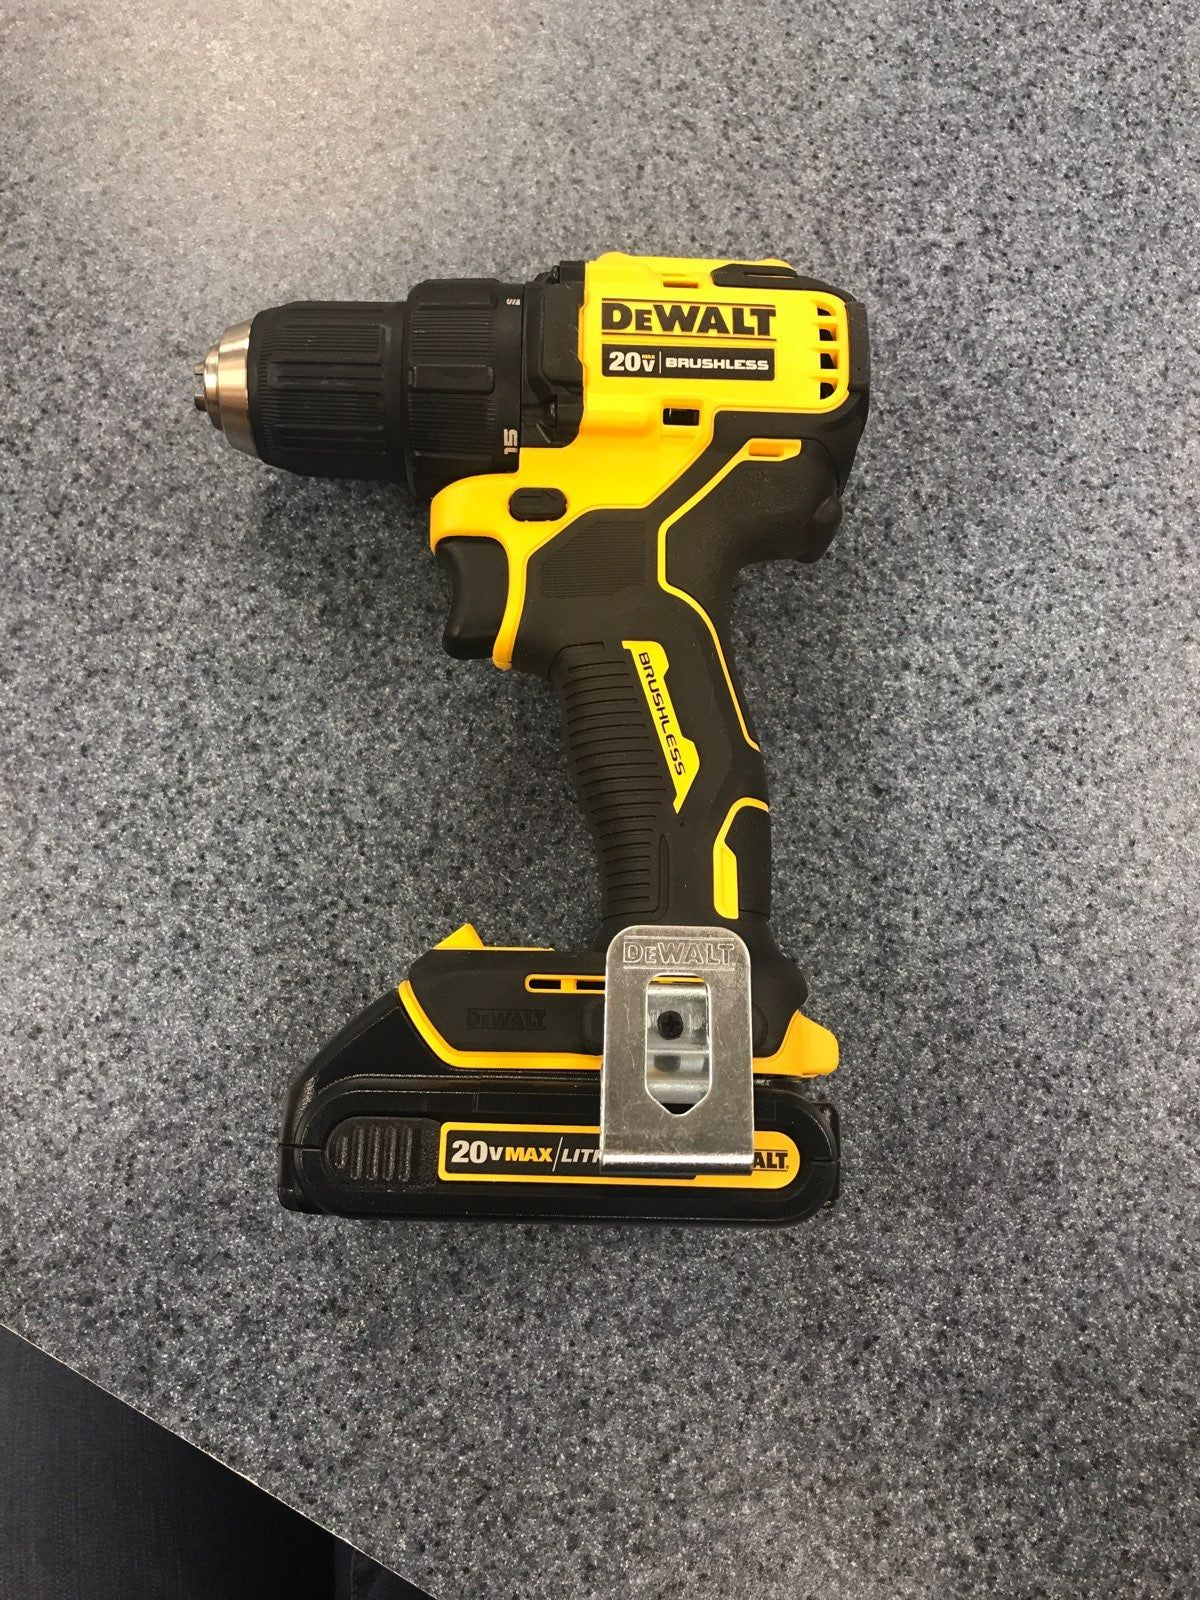 Dewalt 20v 1 2 Cordless Drill Brushless With 20v Lithium Ion Battery Model Dcd708 No Charger Took And Battery Only U Dewalt Dewalt Tools Cordless Drill